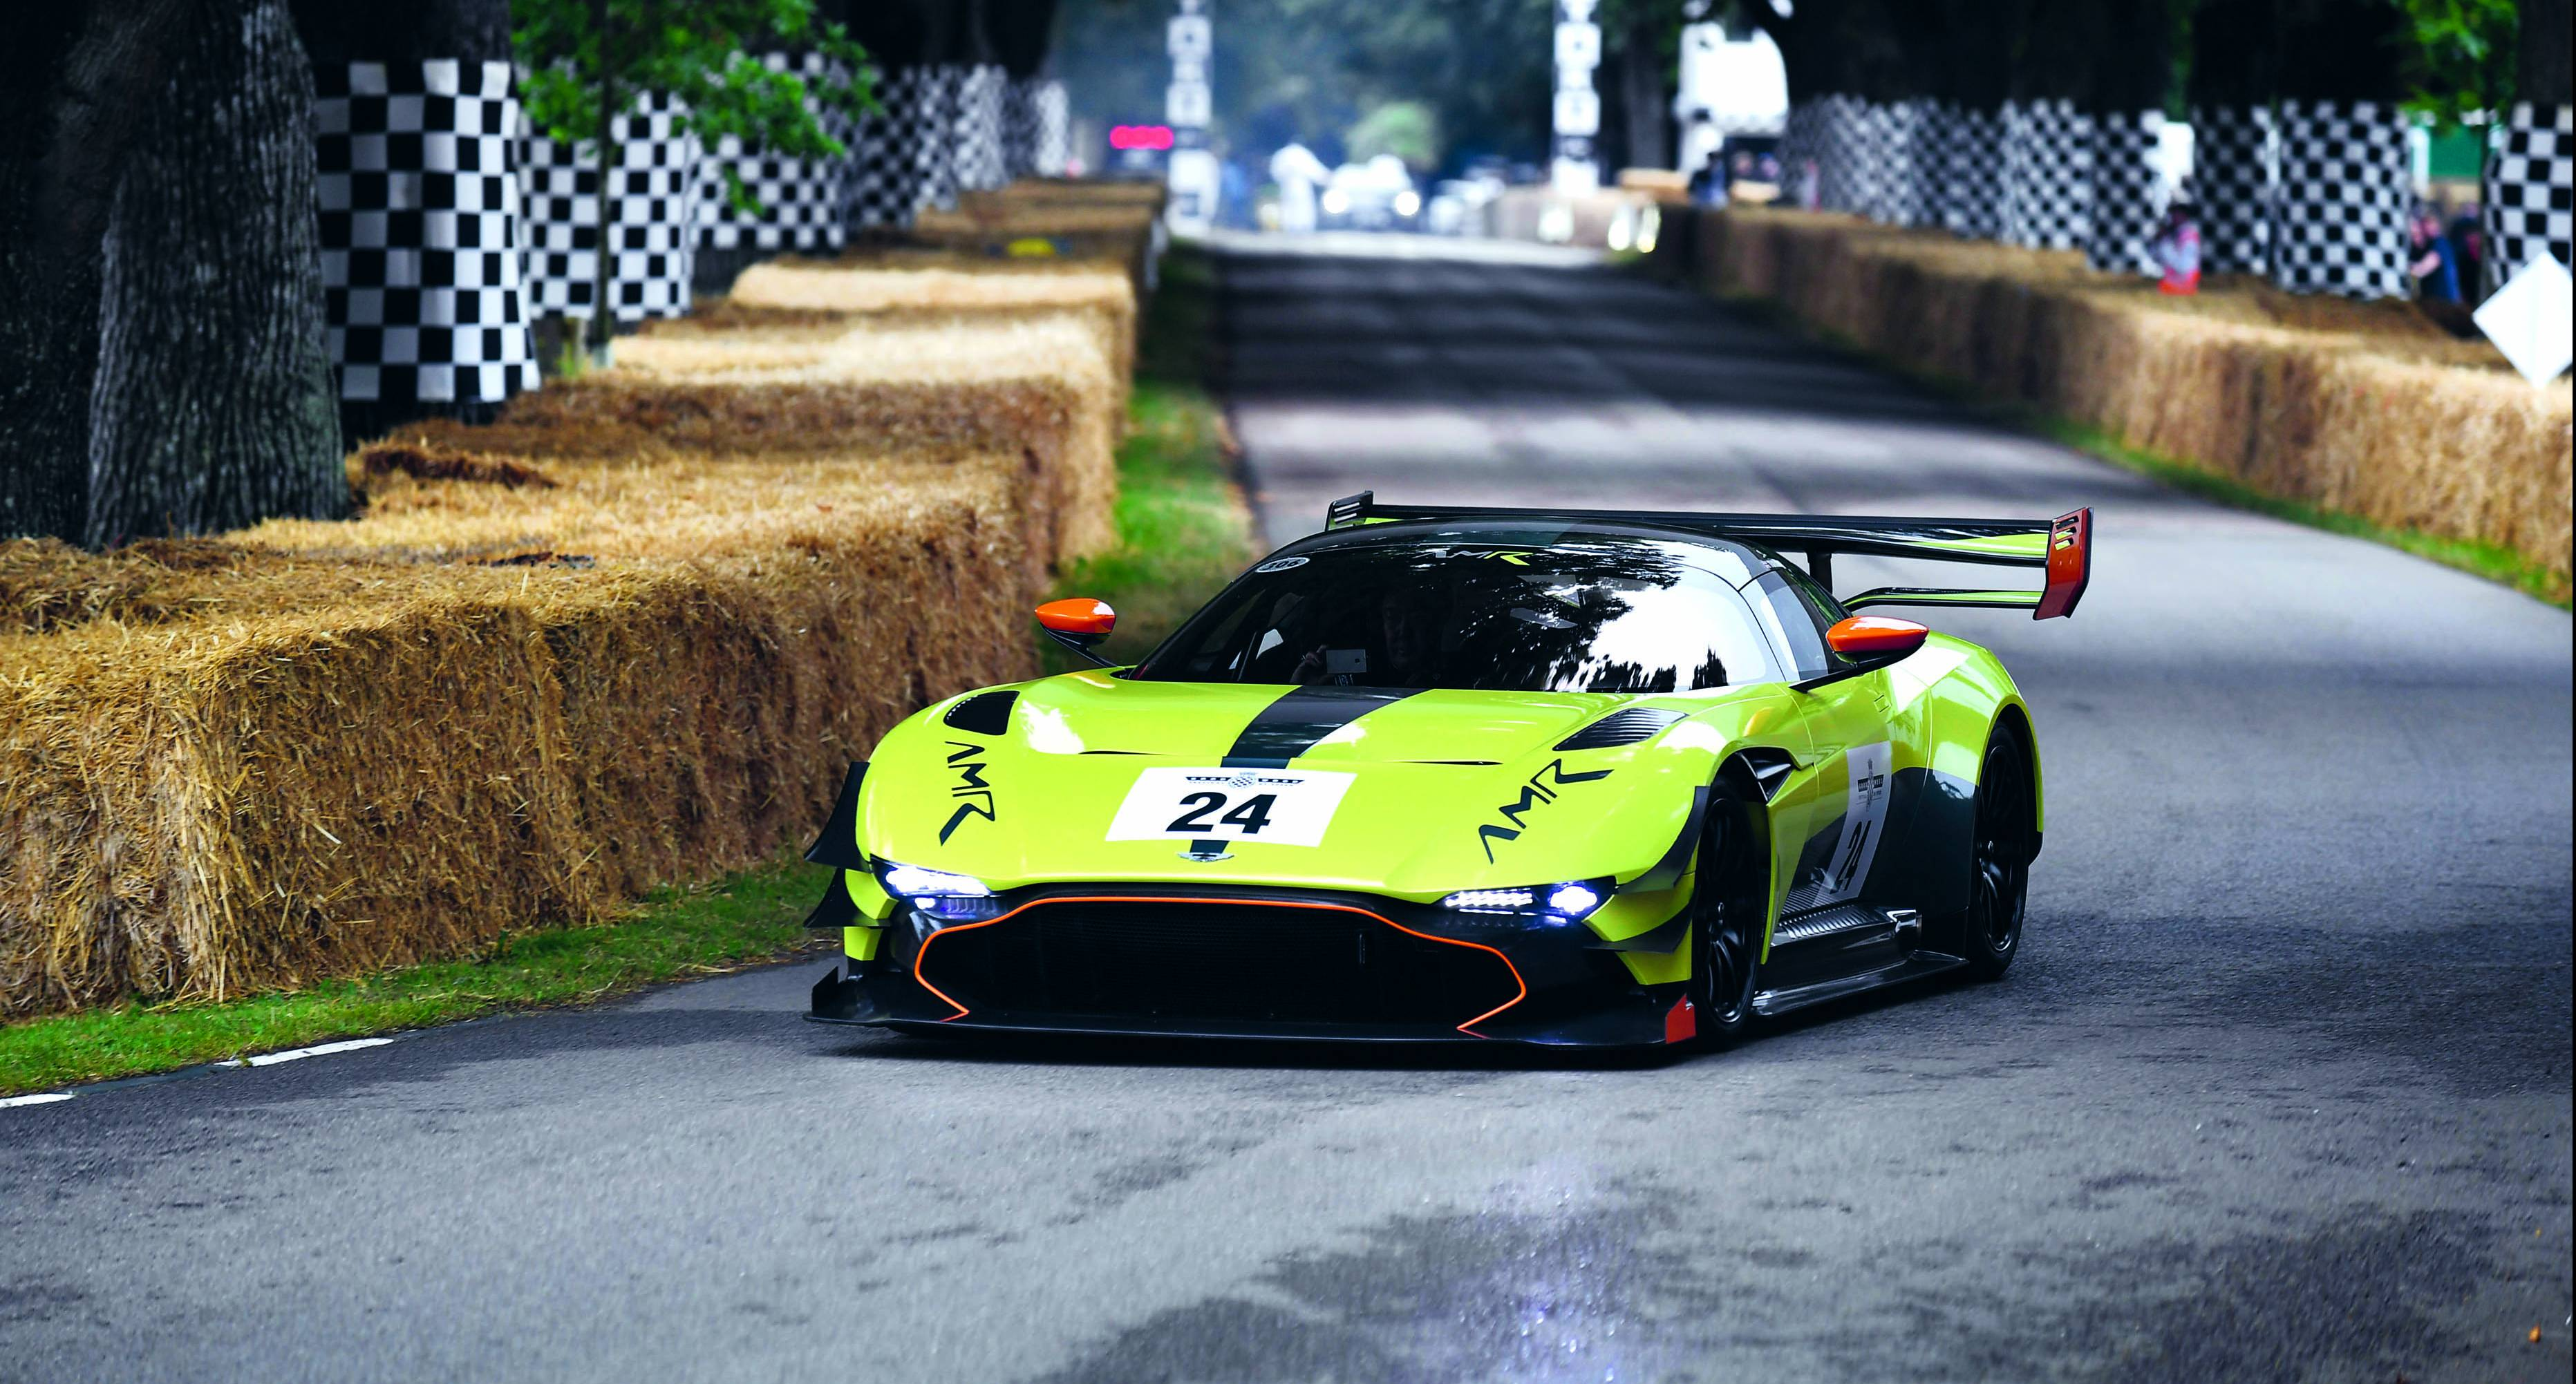 Roaring Success Aston Martin At Goodwood Festival Of Speed